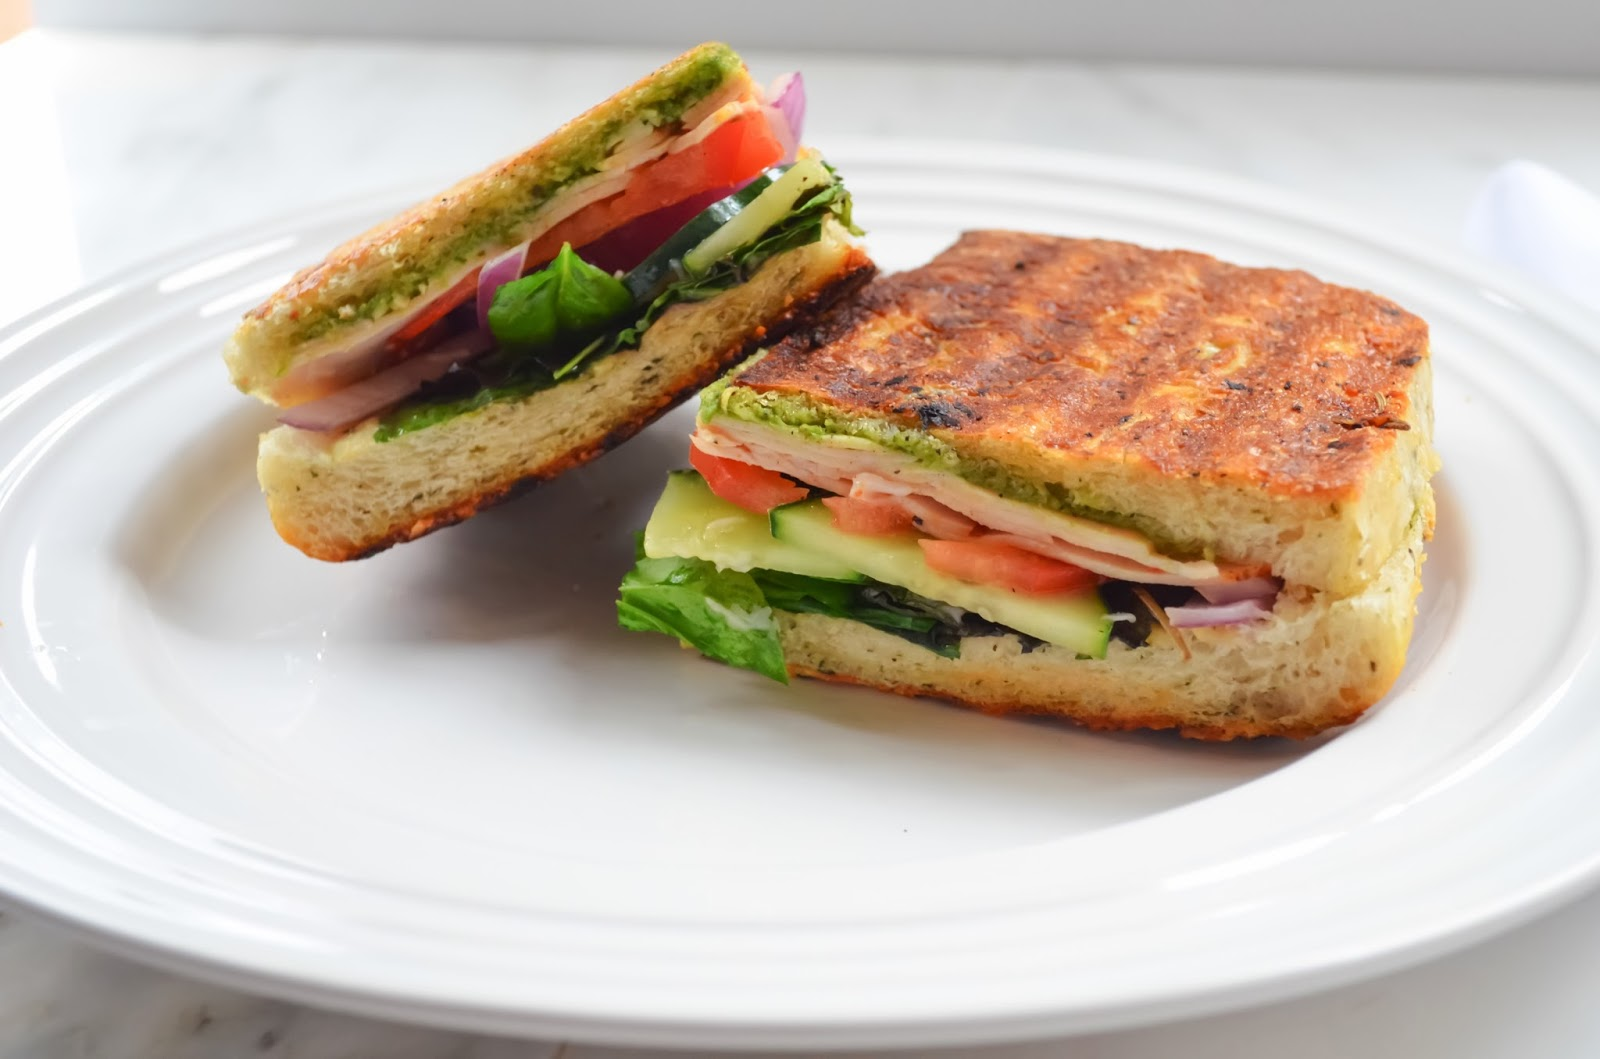 Turkey Pesto Paninis filled with Turkey, Tomato, Onion, and Spinach on Focaccia Bread.